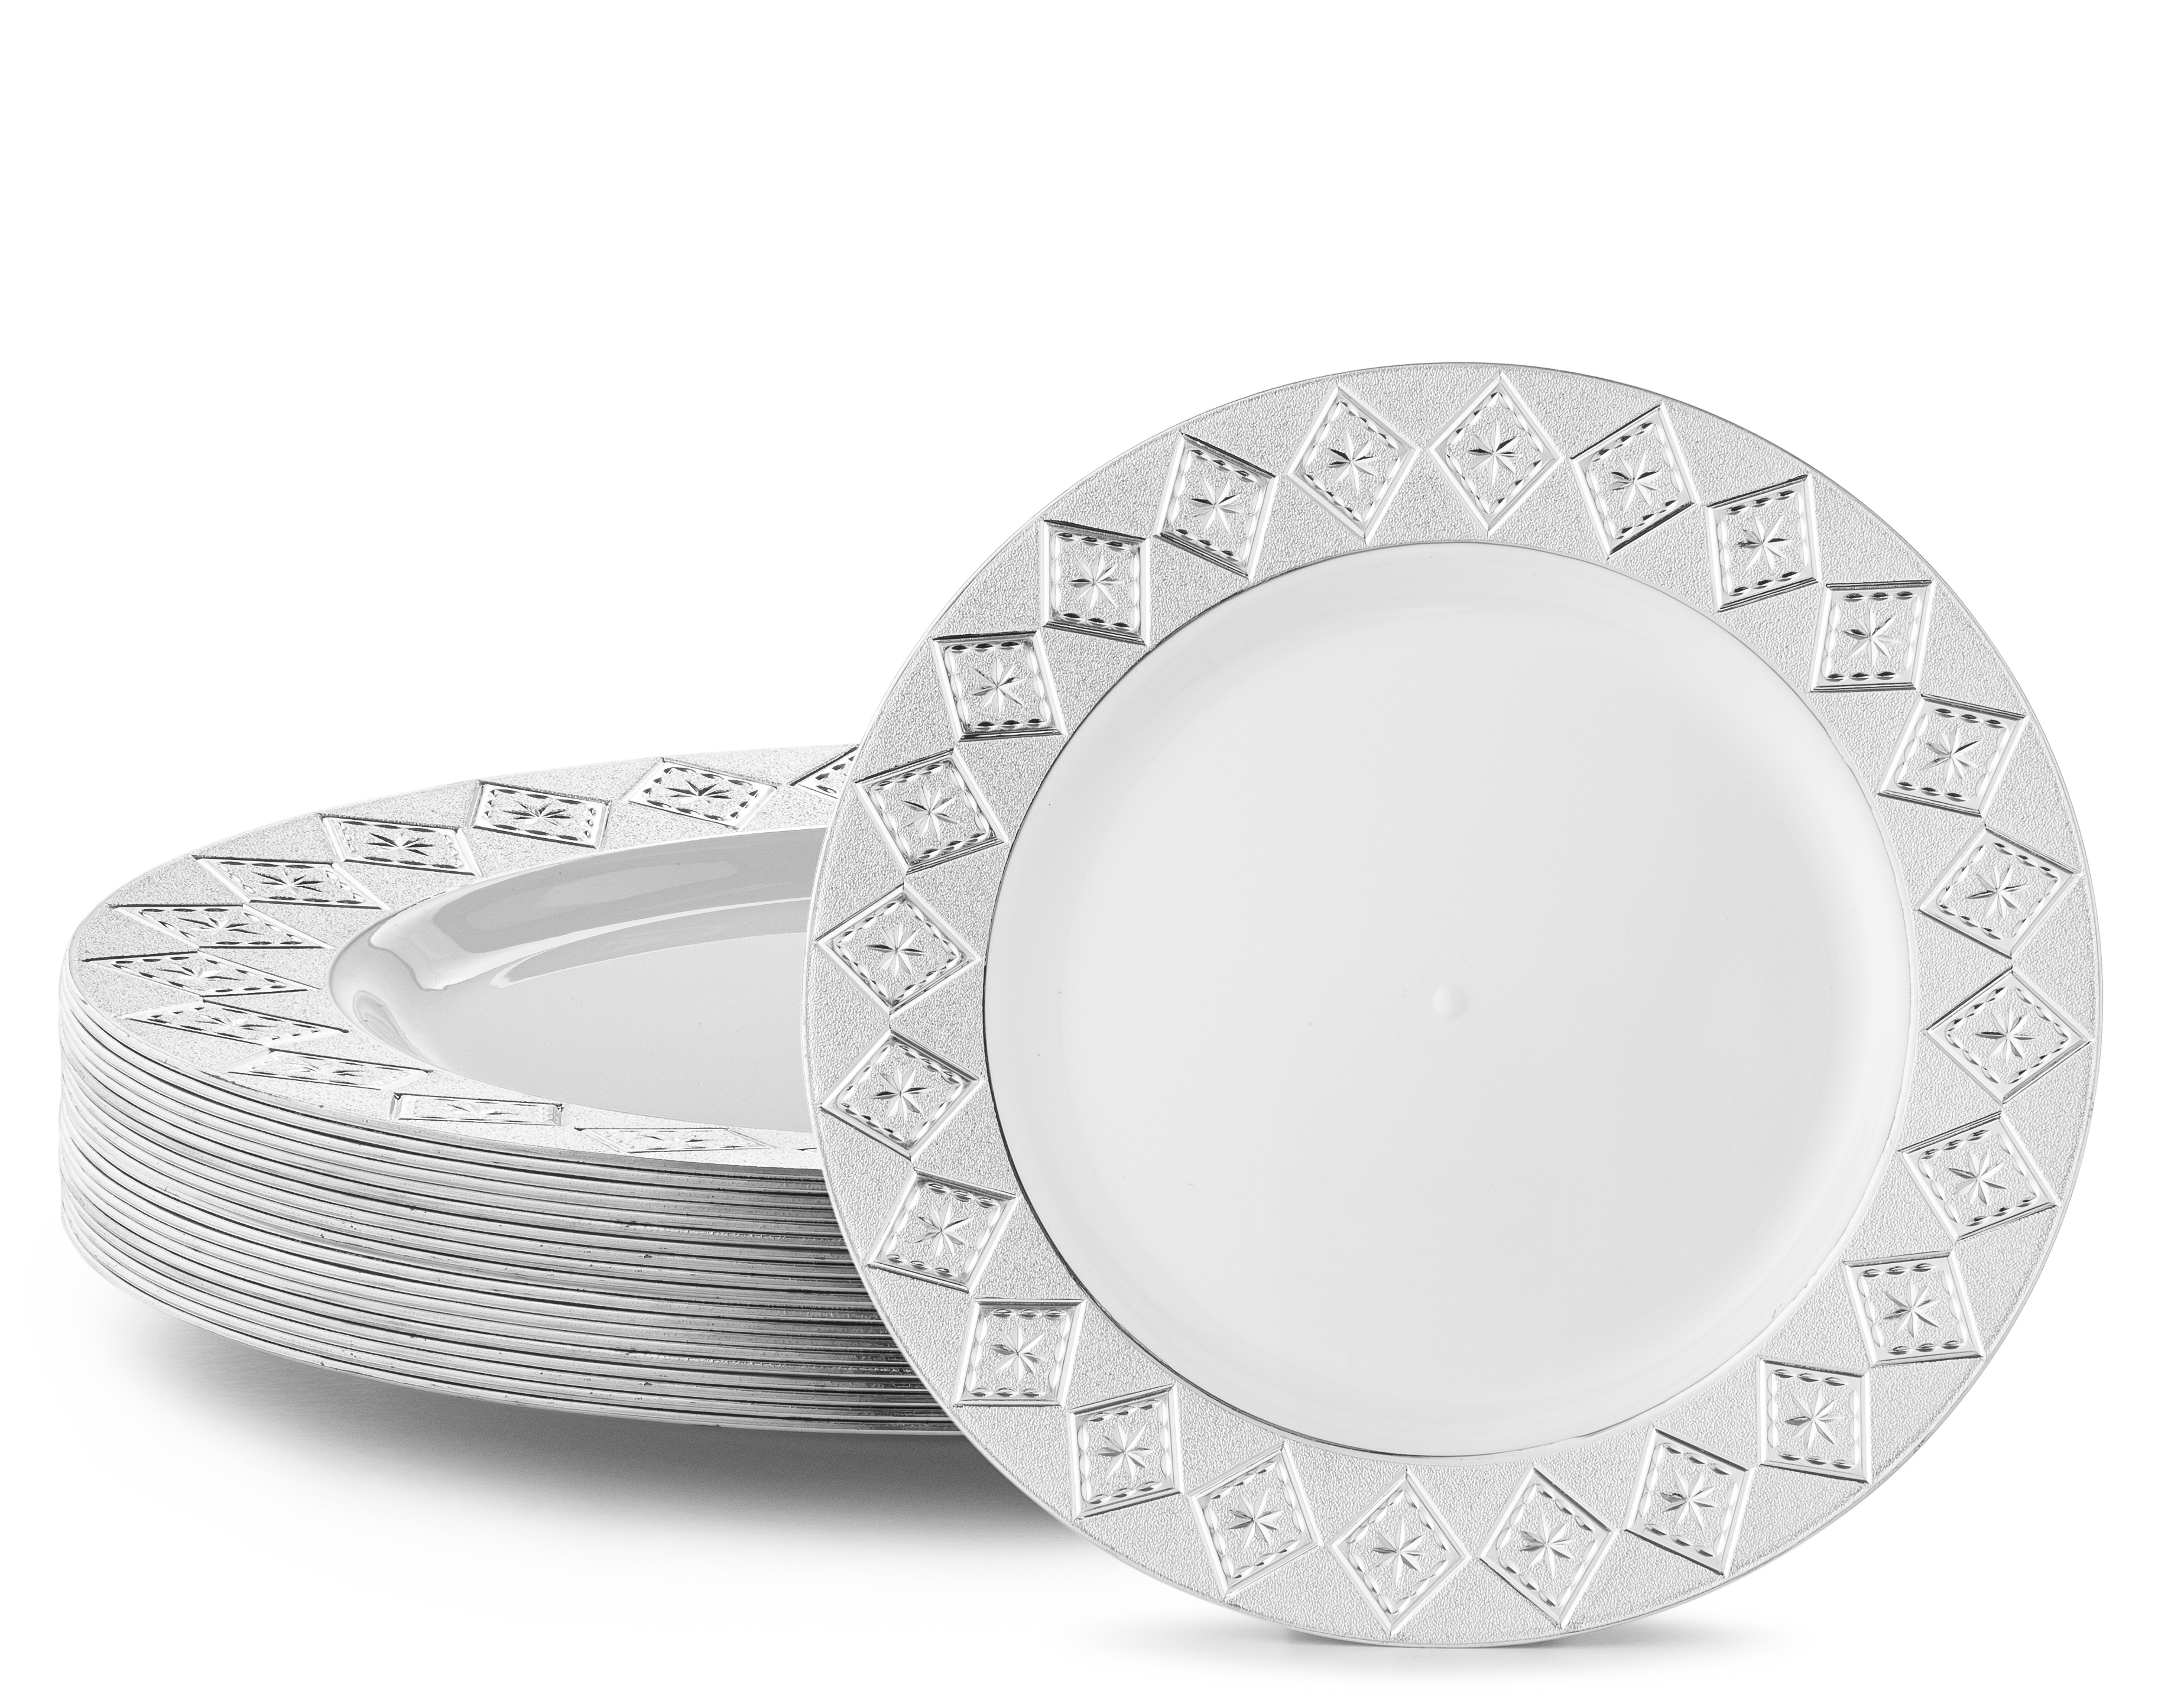 VINTAGE PLASTIC PARTY DISPOSABLE PLATES | 10.25 Inch Hard Round Wedding Dinner Plates | White with  sc 1 st  Walmart & VINTAGE PLASTIC PARTY DISPOSABLE PLATES | 10.25 Inch Hard Round ...